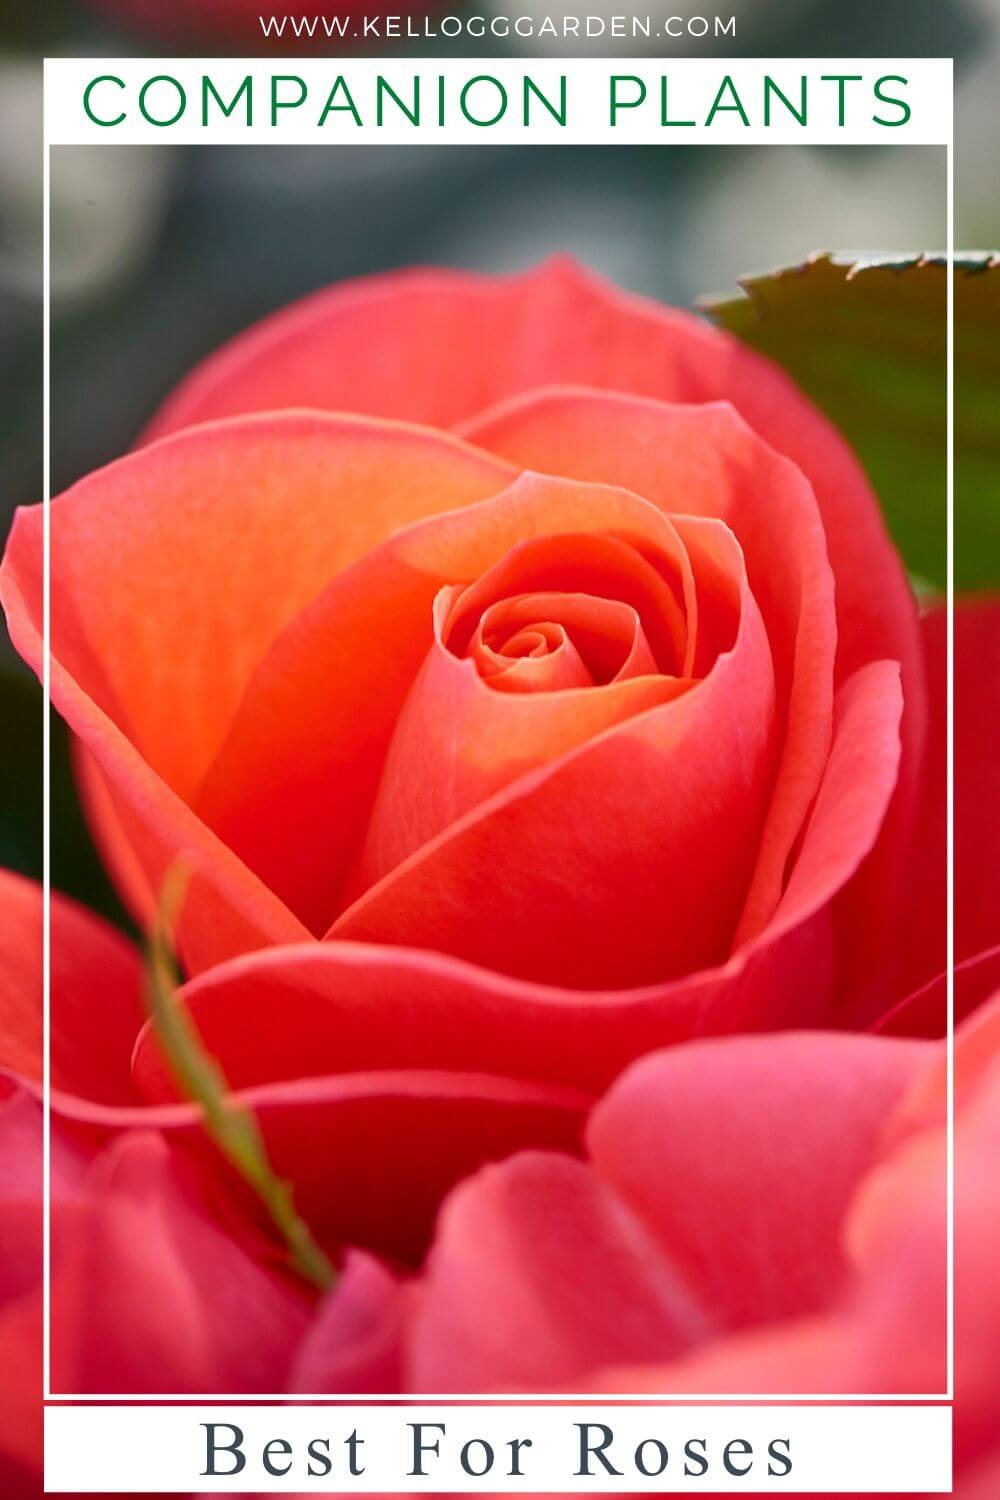 """Image of pink rose with text """"Companion Plants, best for roses"""""""